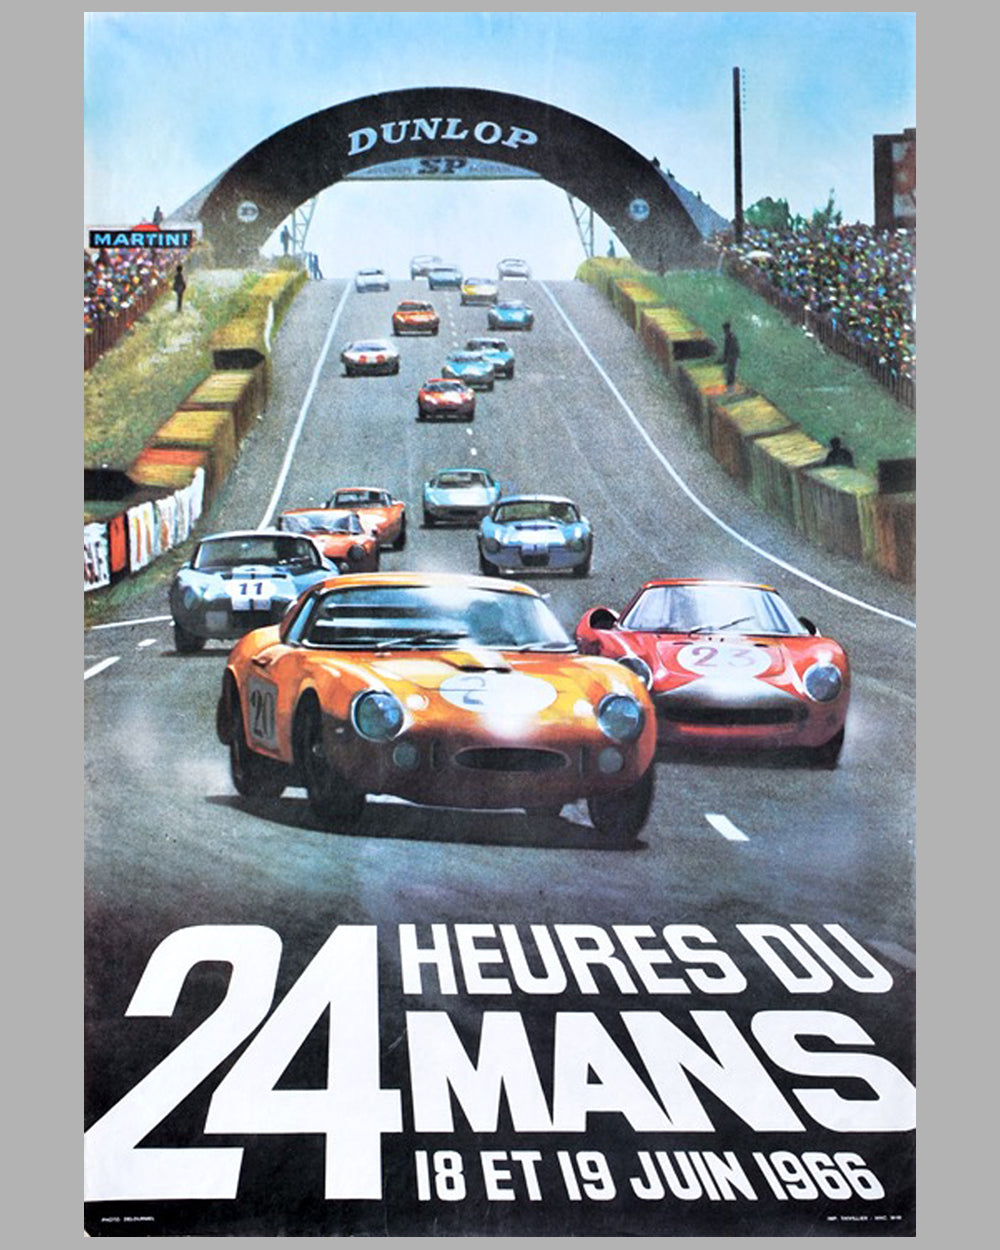 1966 - 24 hours of Le Mans original poster by Andre Delourmel